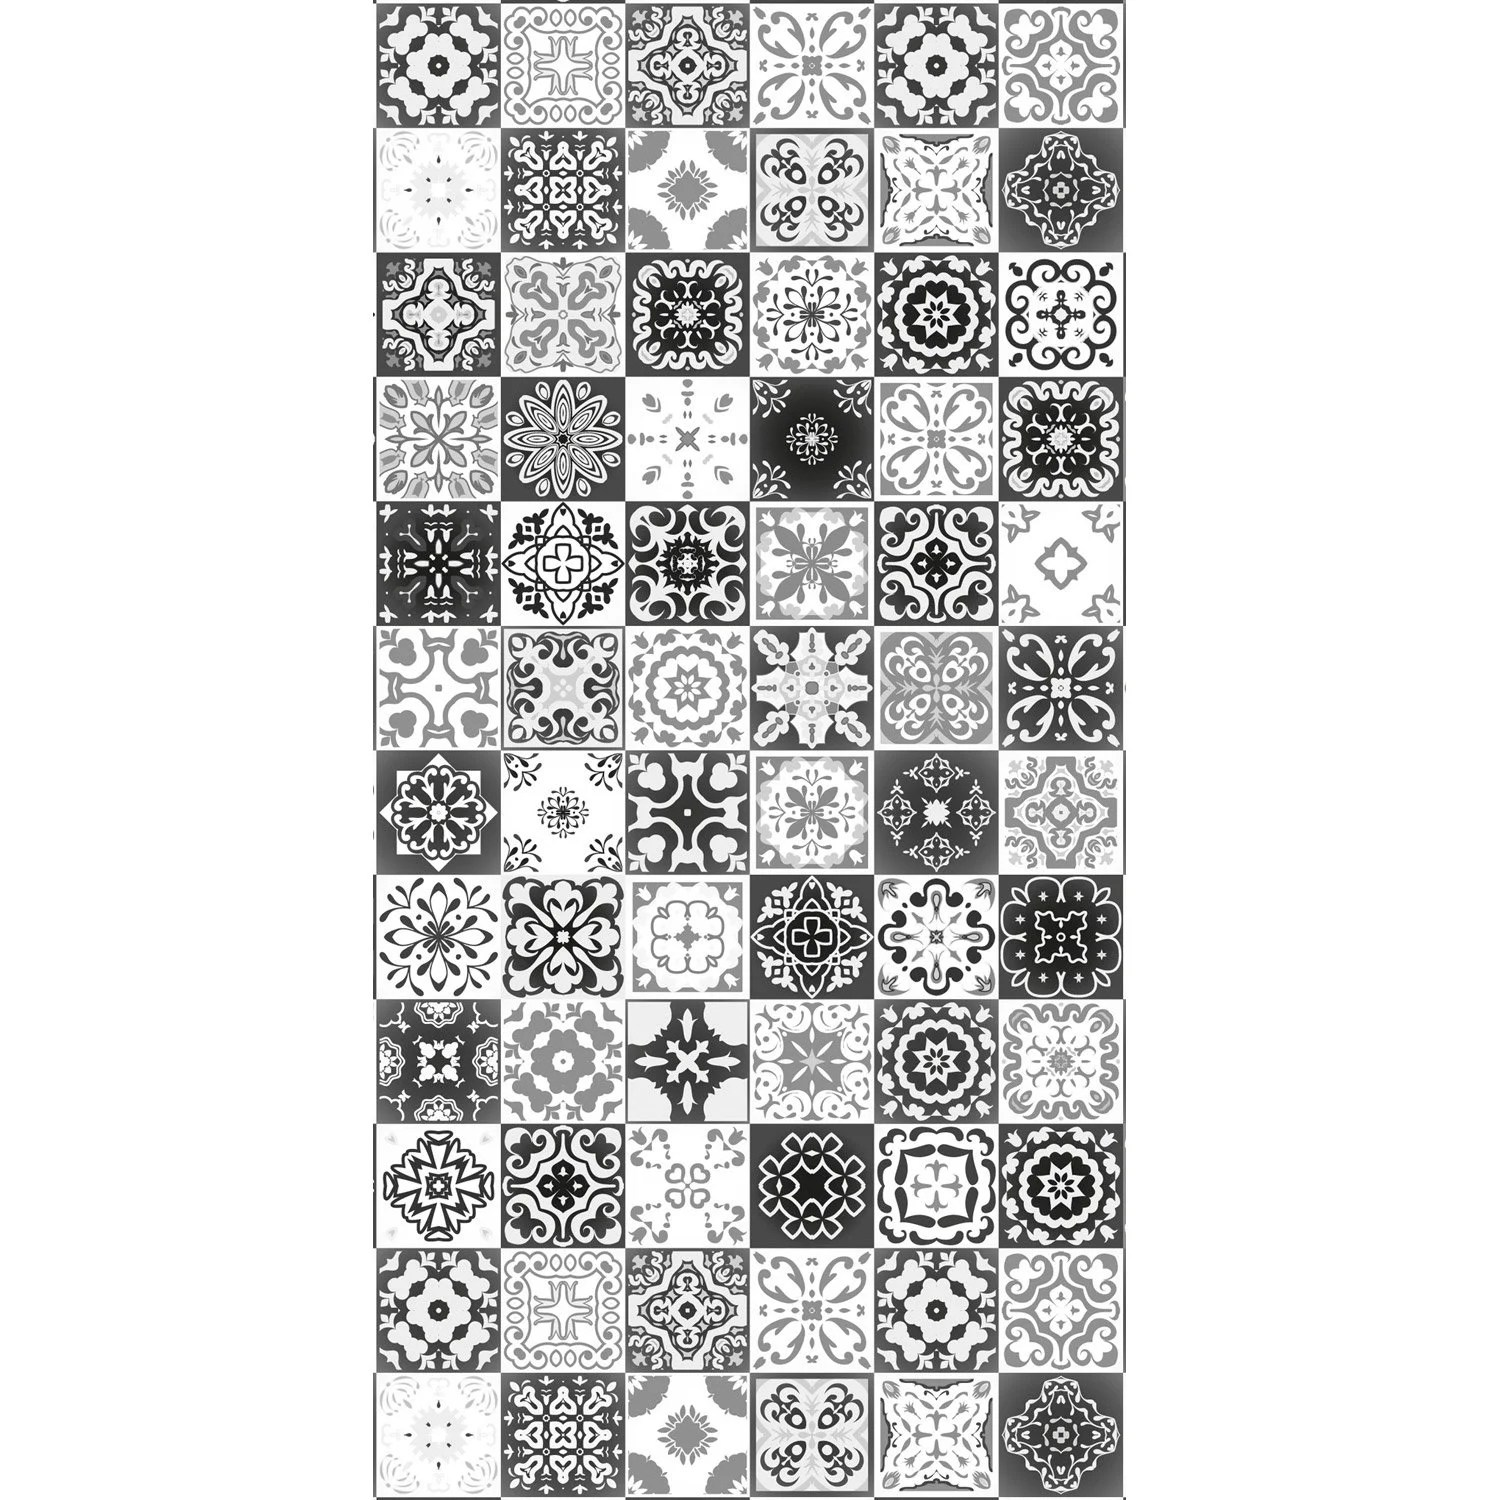 Deco Carreau Ciment Panneau H 200 Cm X L 100 Cm Deco K In Carreaux Ciment Noir Brillant